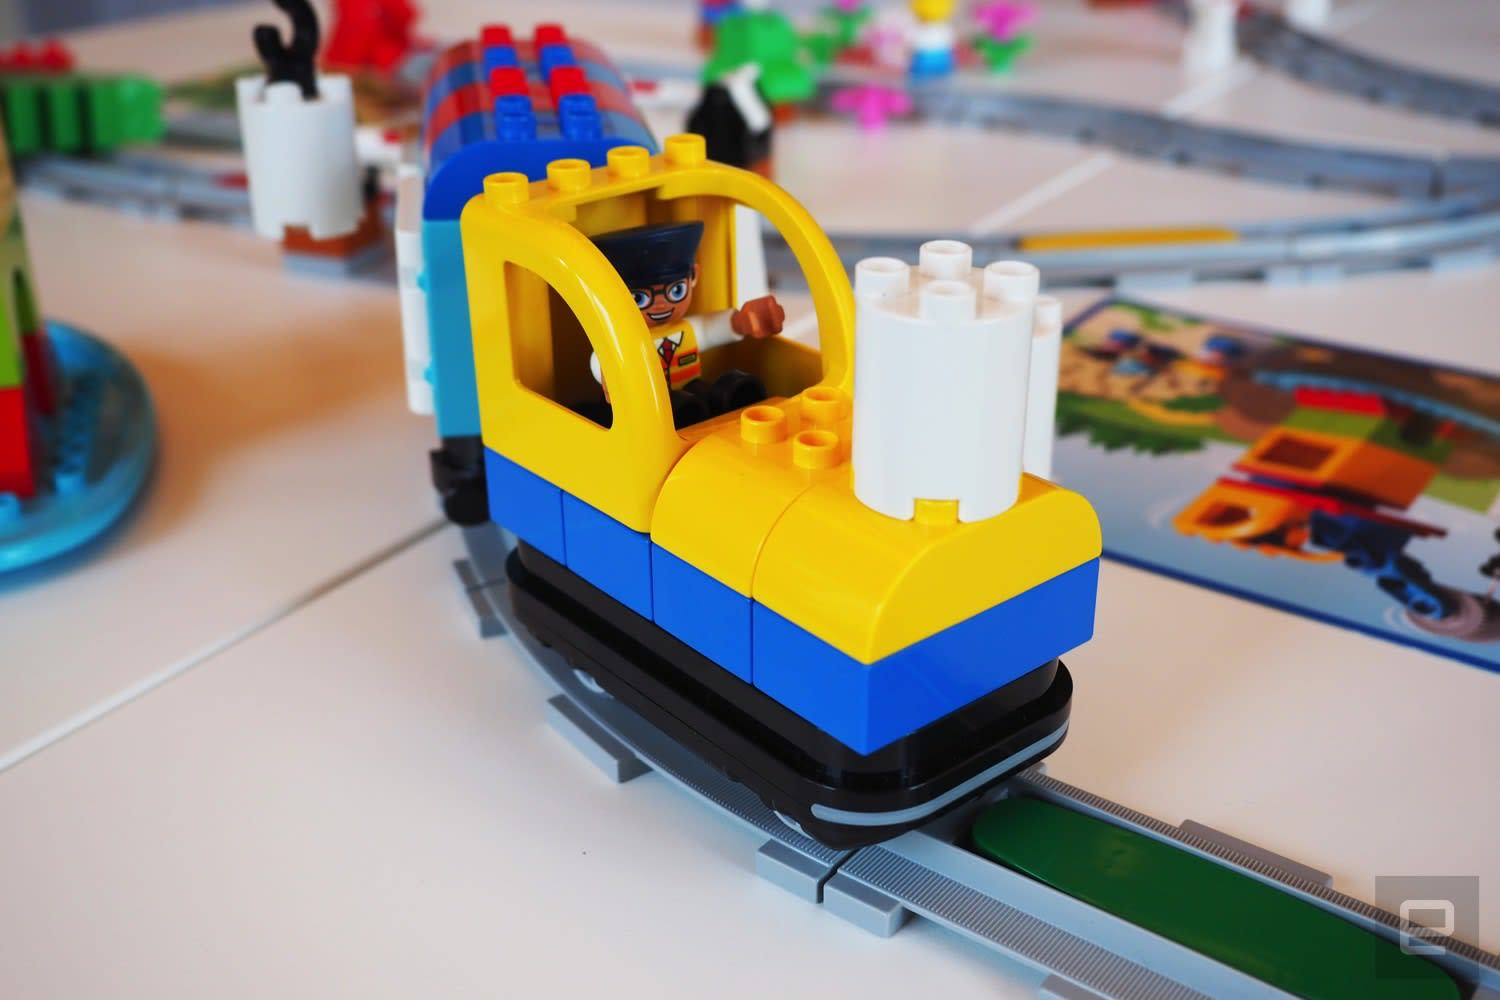 Lego's new toy train is a STEM tool for preschoolers | Engadget